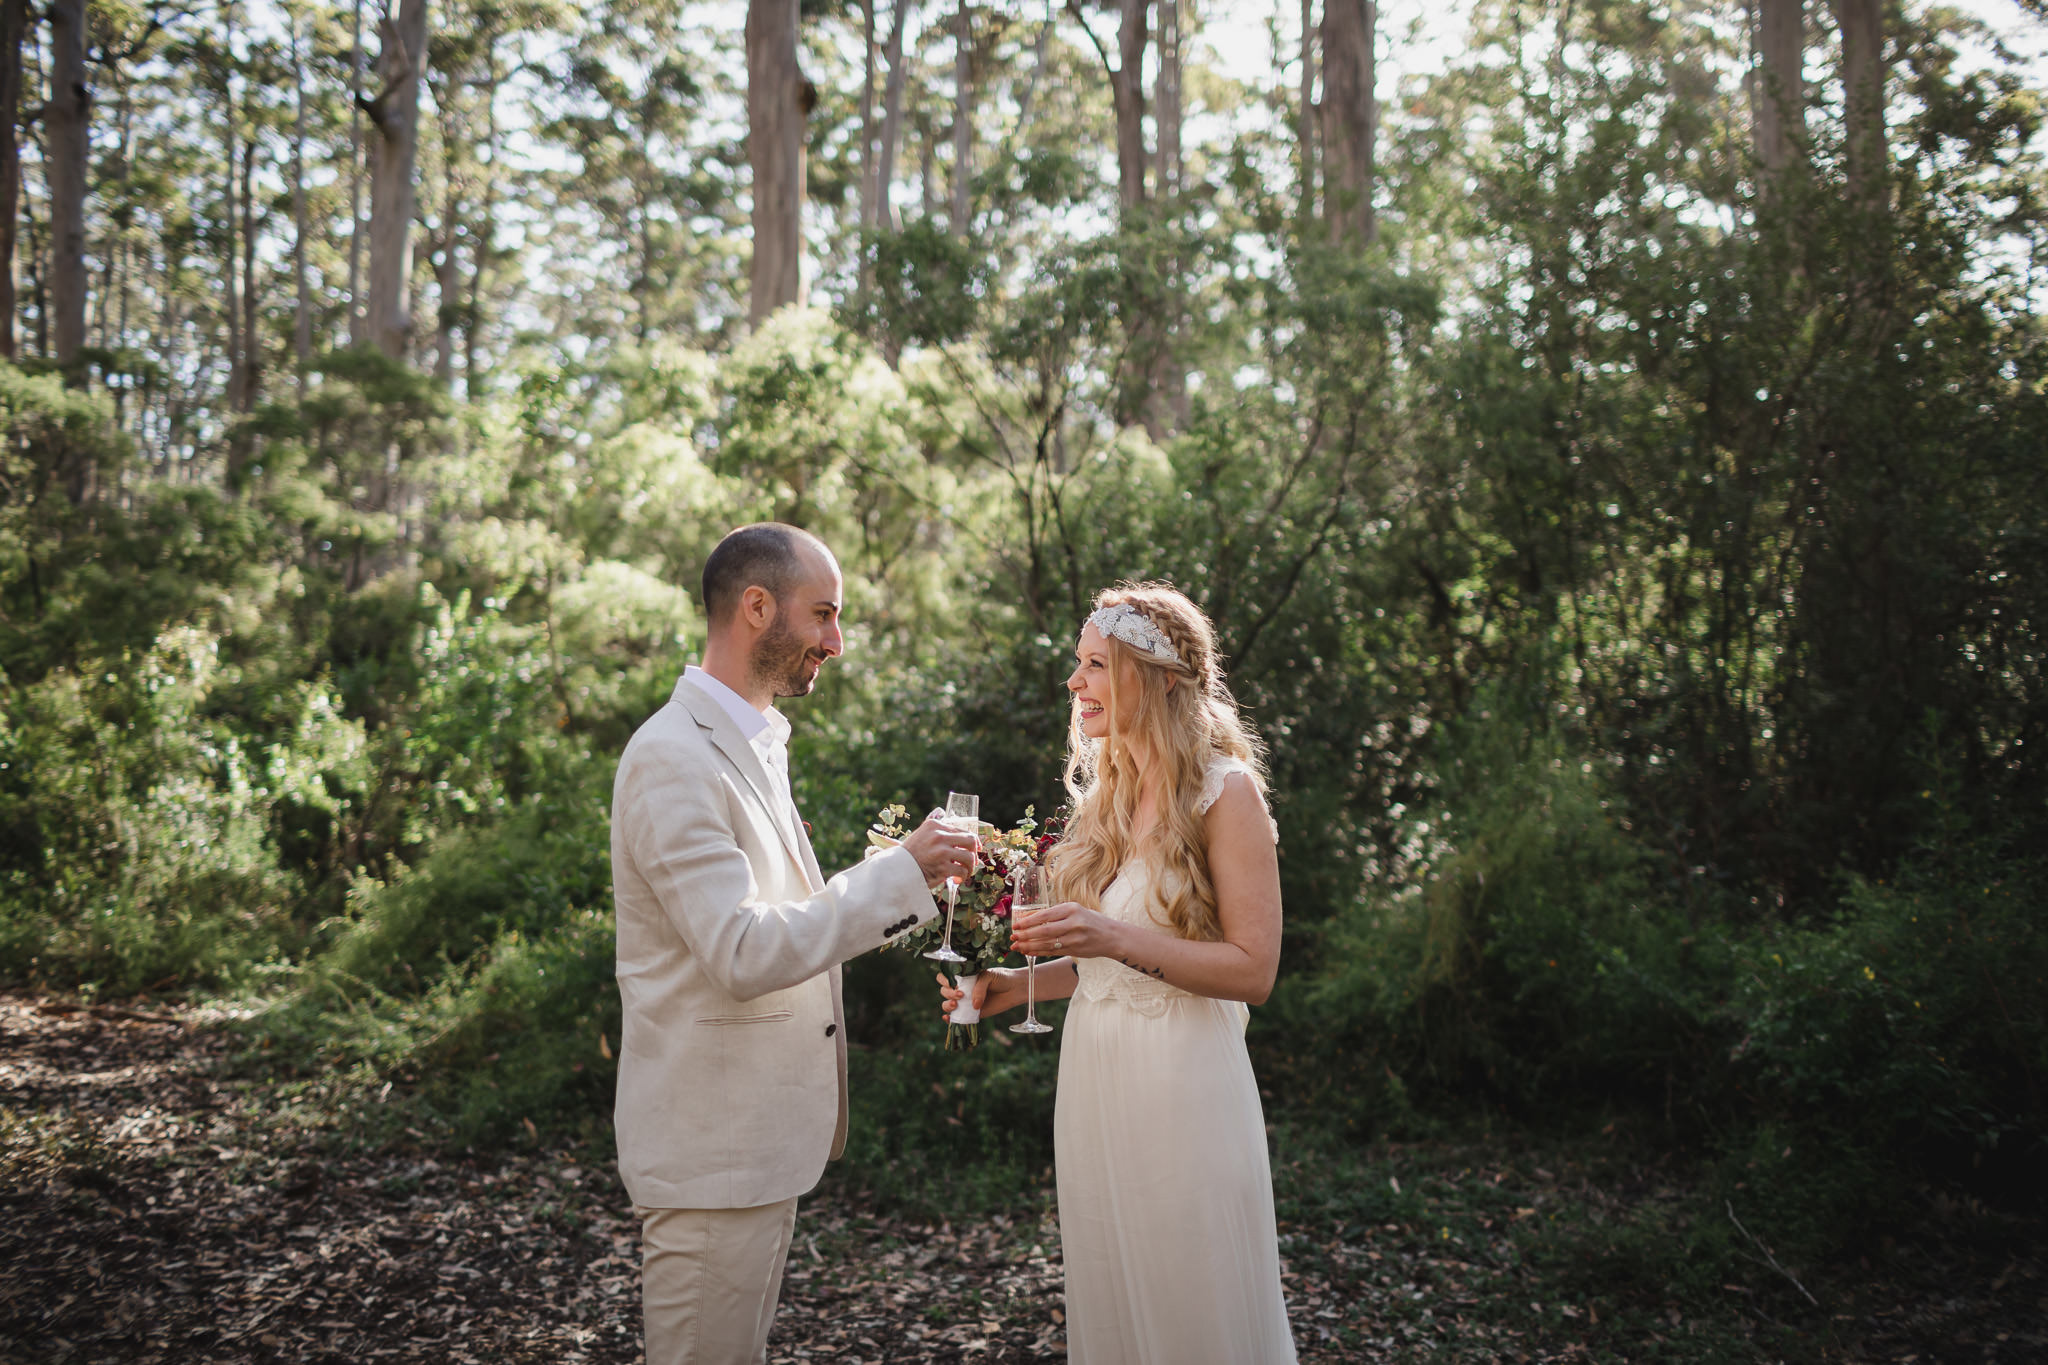 Couple celebrating their wedding with champagne toast in Boranup forest near Margaret River